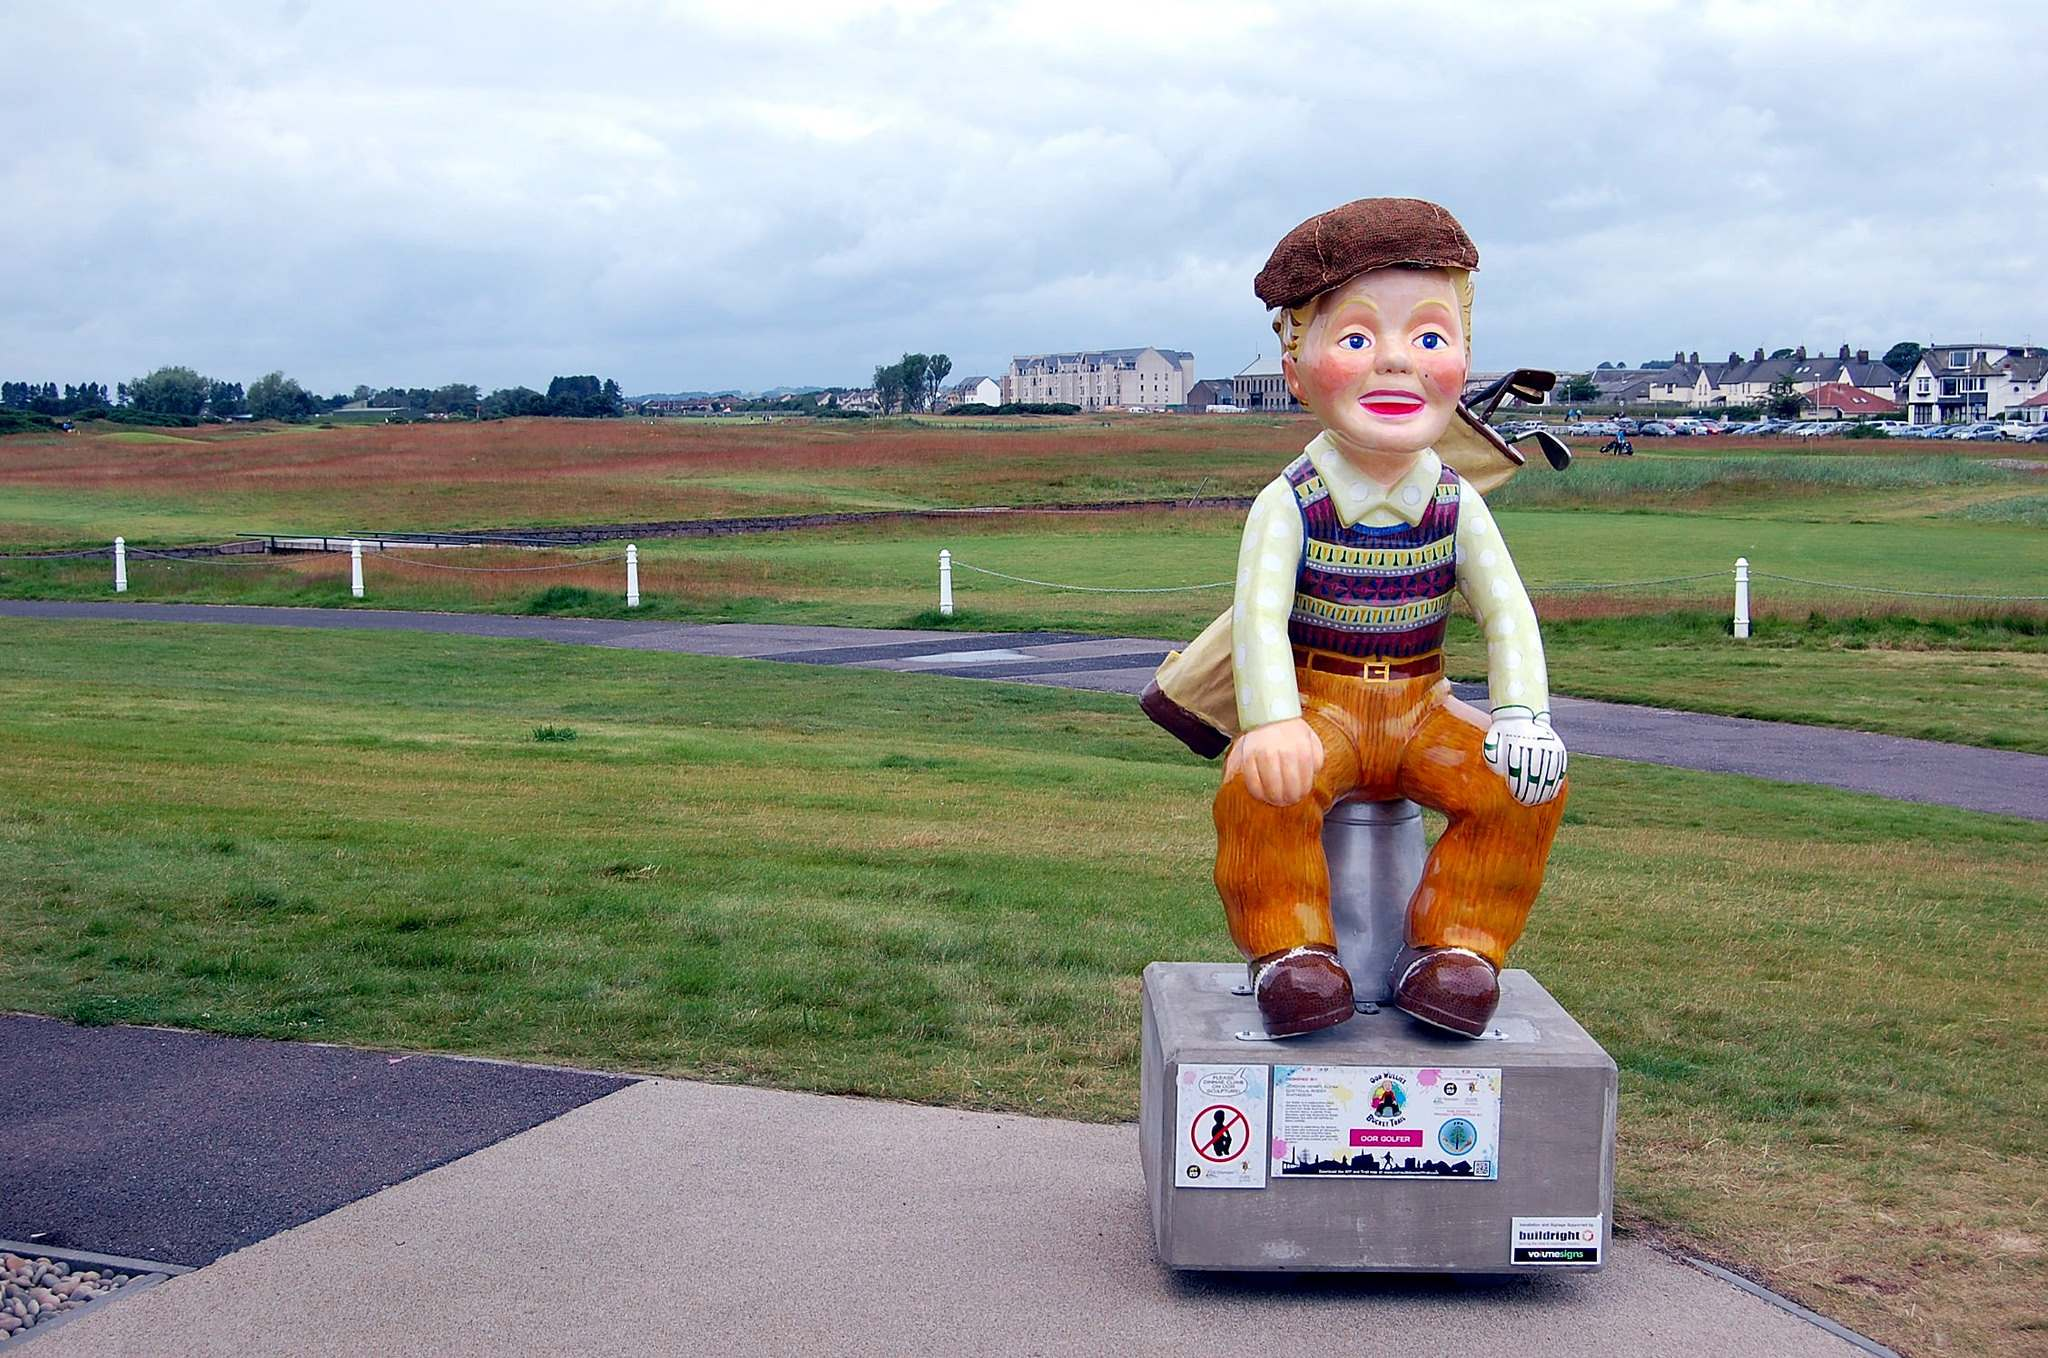 wullie15 Oor Wullie Bucket Trail in City of Dundee